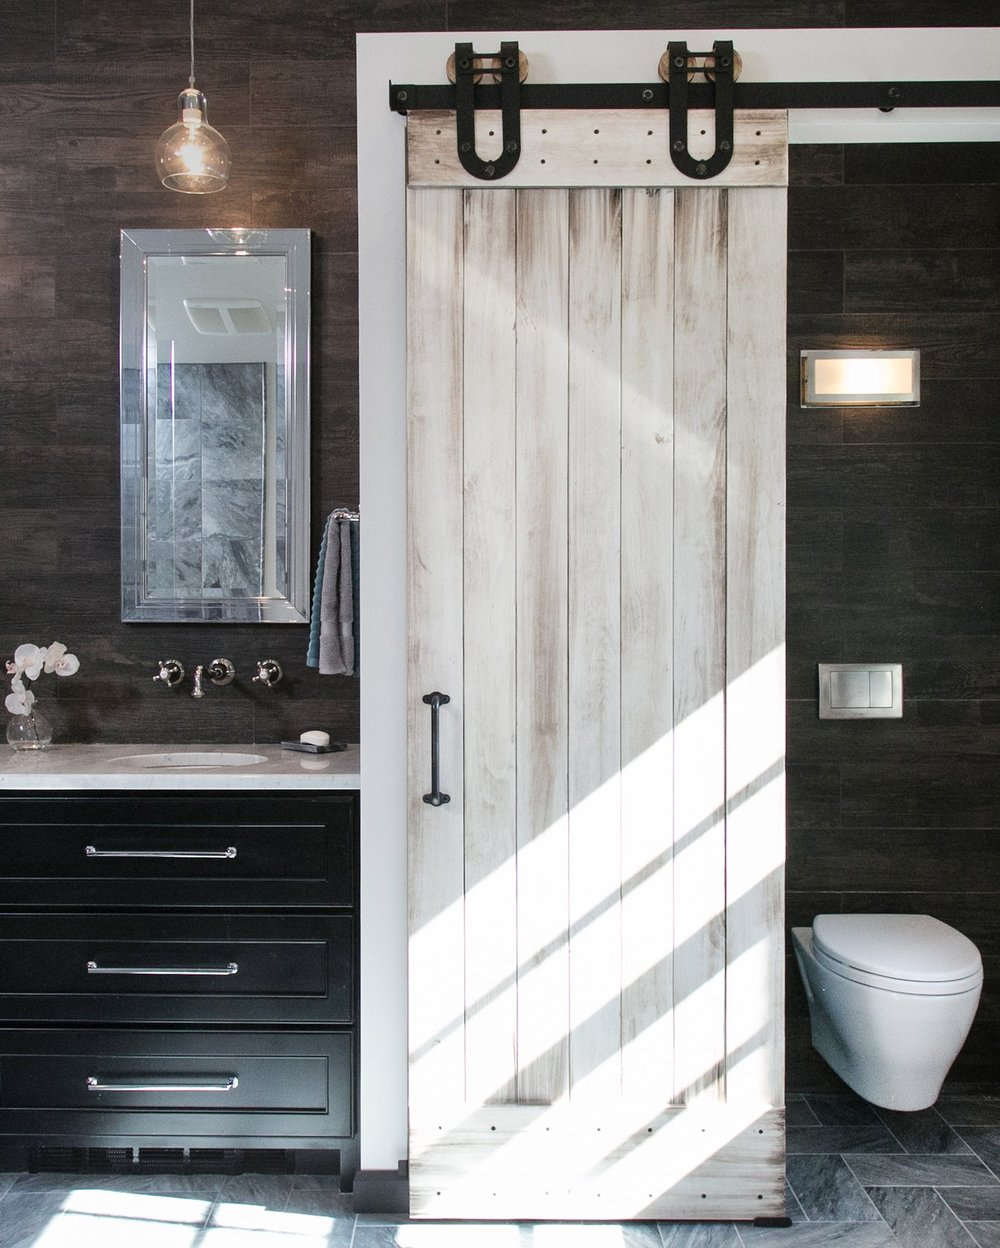 Kitchen & Bath Remodeling in Philadelphia, PA - Get the Best Home ...